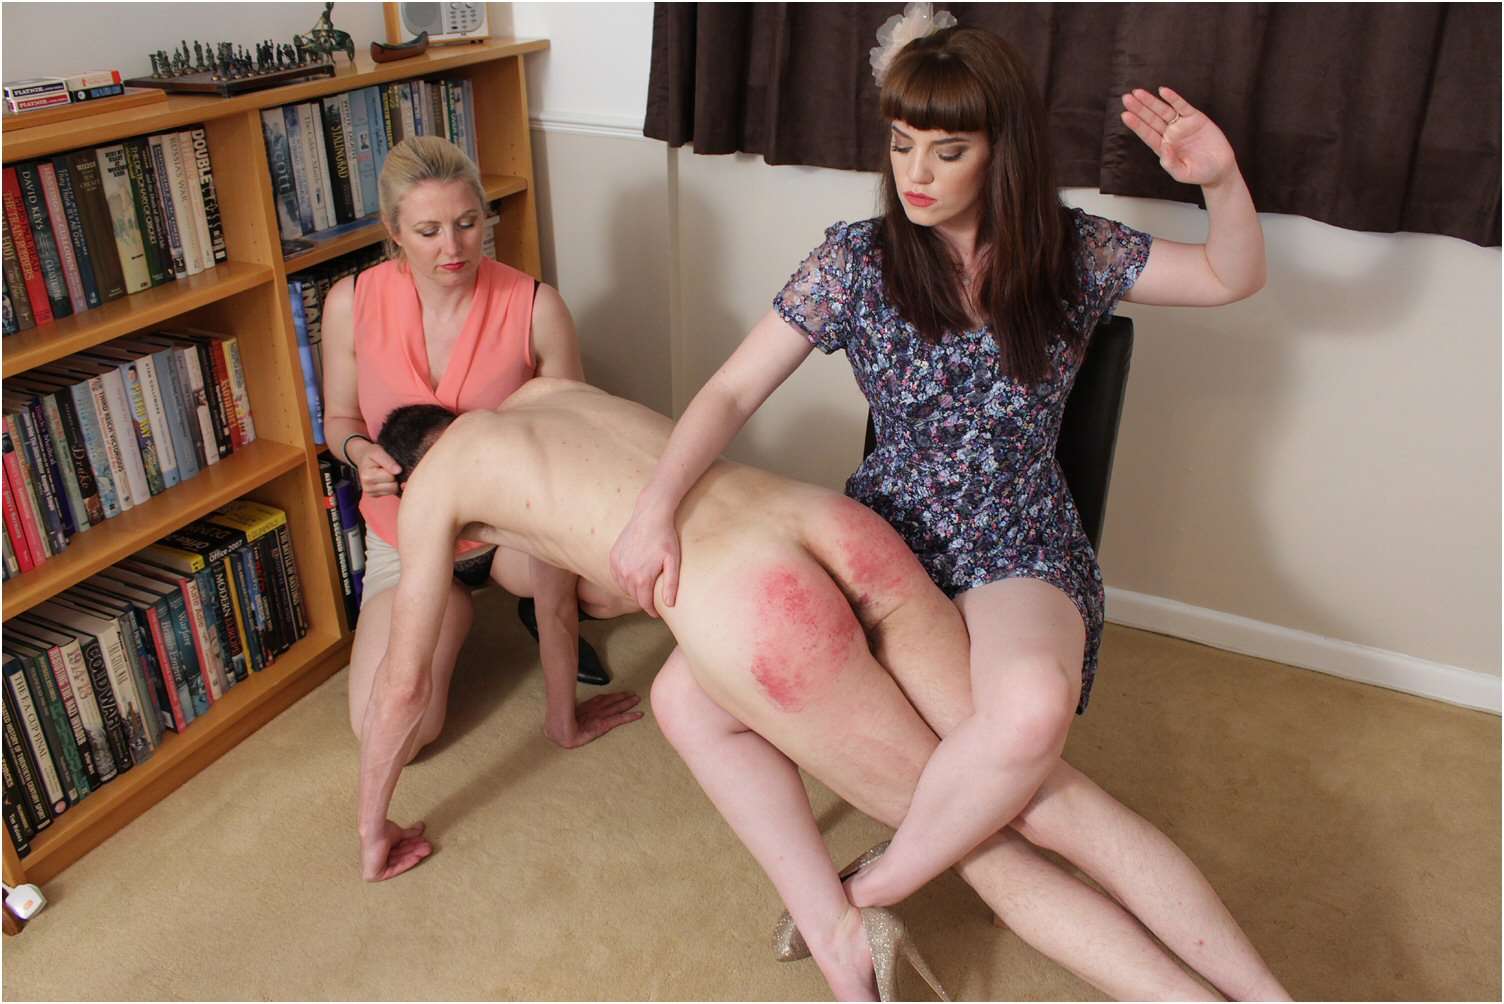 British women who spank